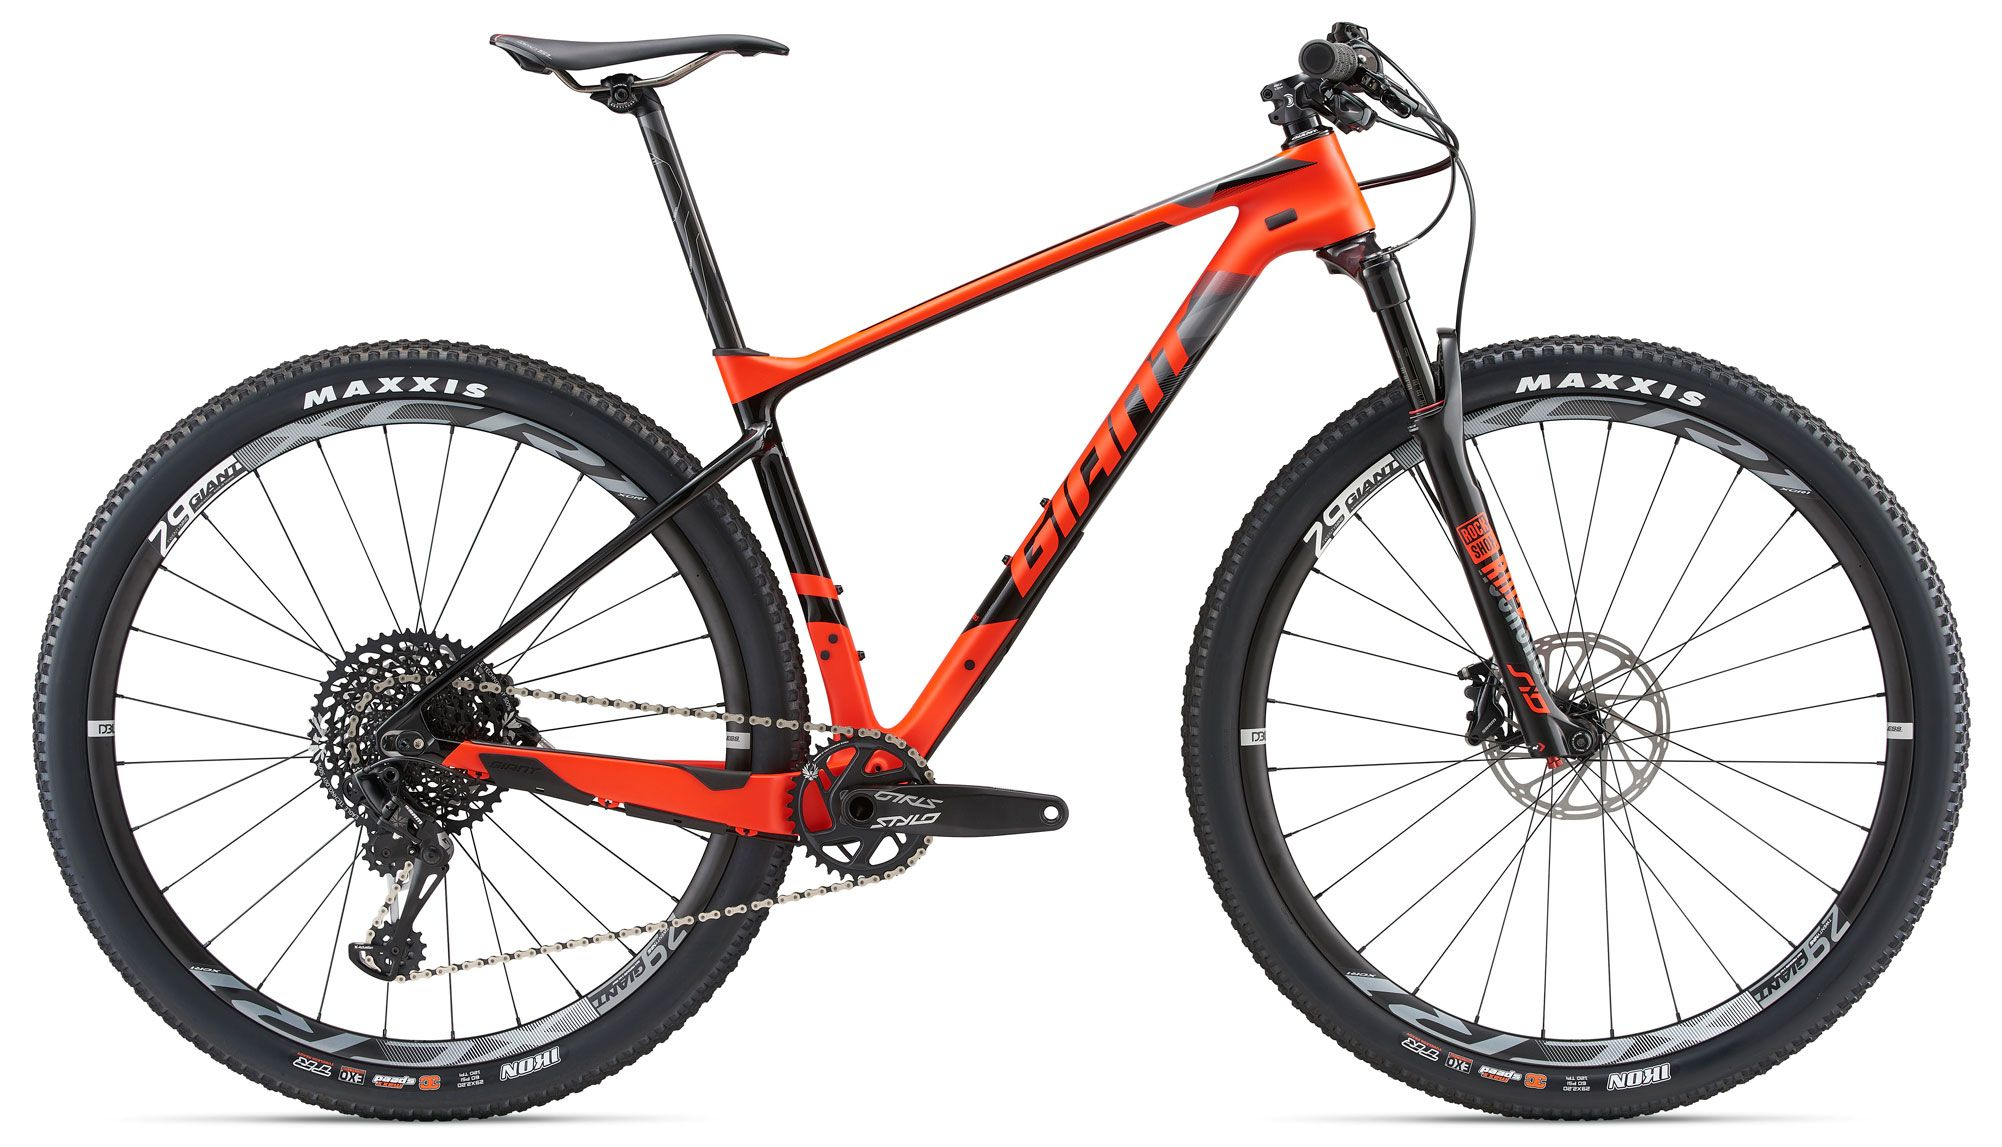 Велосипед Giant XTC Advanced 29er 1 2018 велосипед giant tcr advanced sl 2 2017